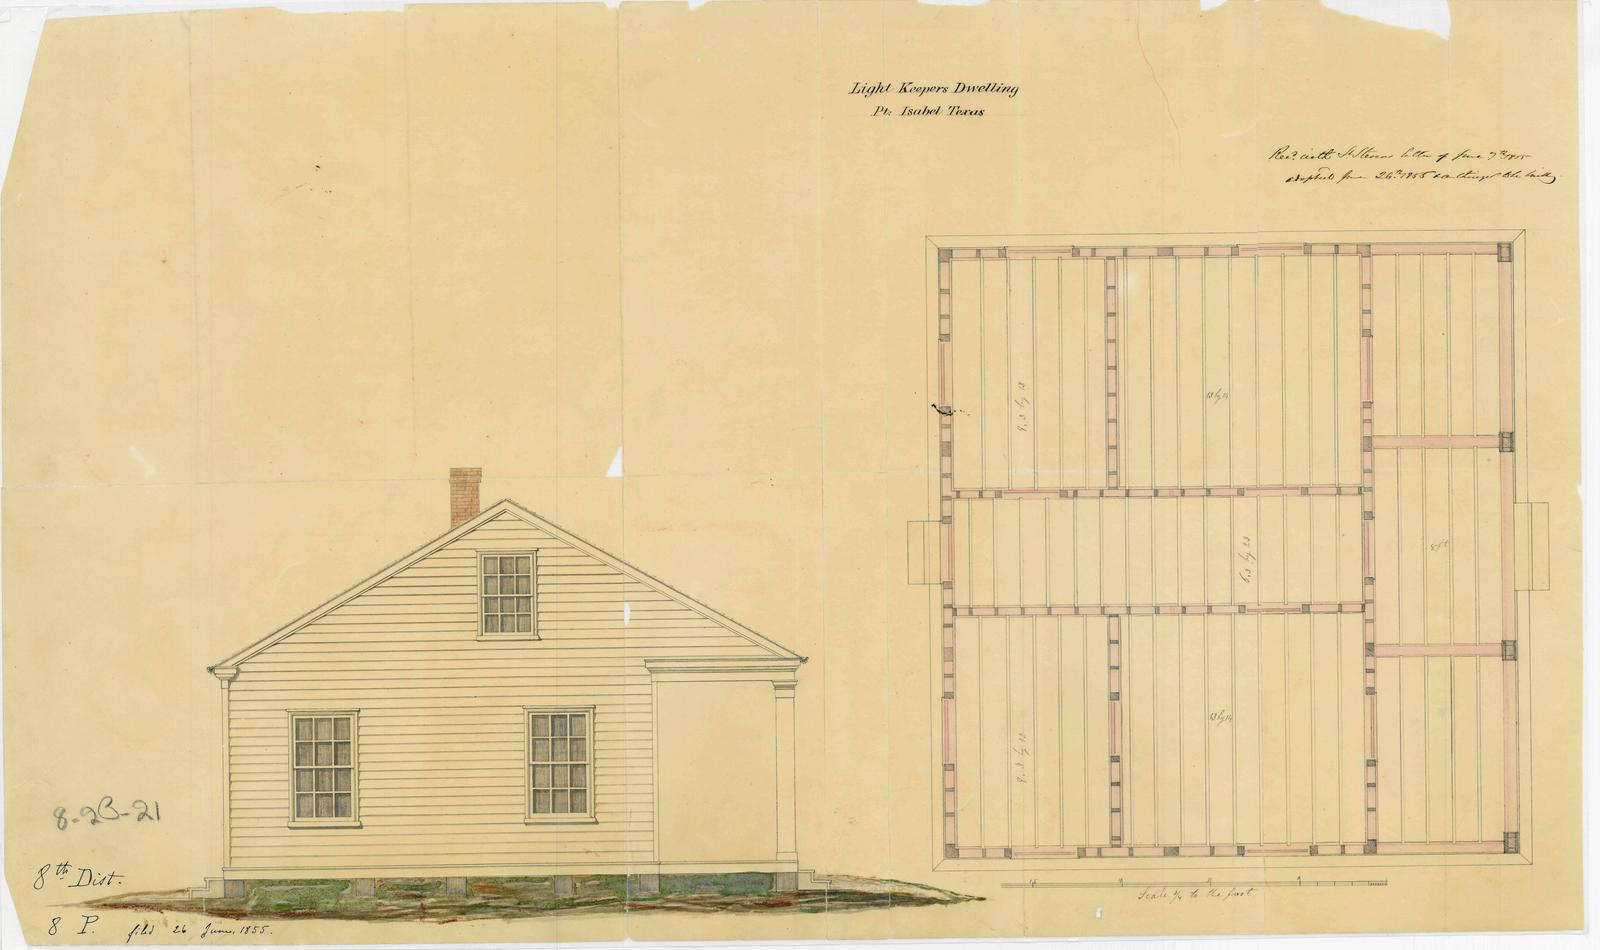 Elevation Drawing and Floor Plan for Light Keeper's Dwelling ... on history house, hunting island light keeper house, pet shop house, hamster house, photography house, first light house, dog kennel house,